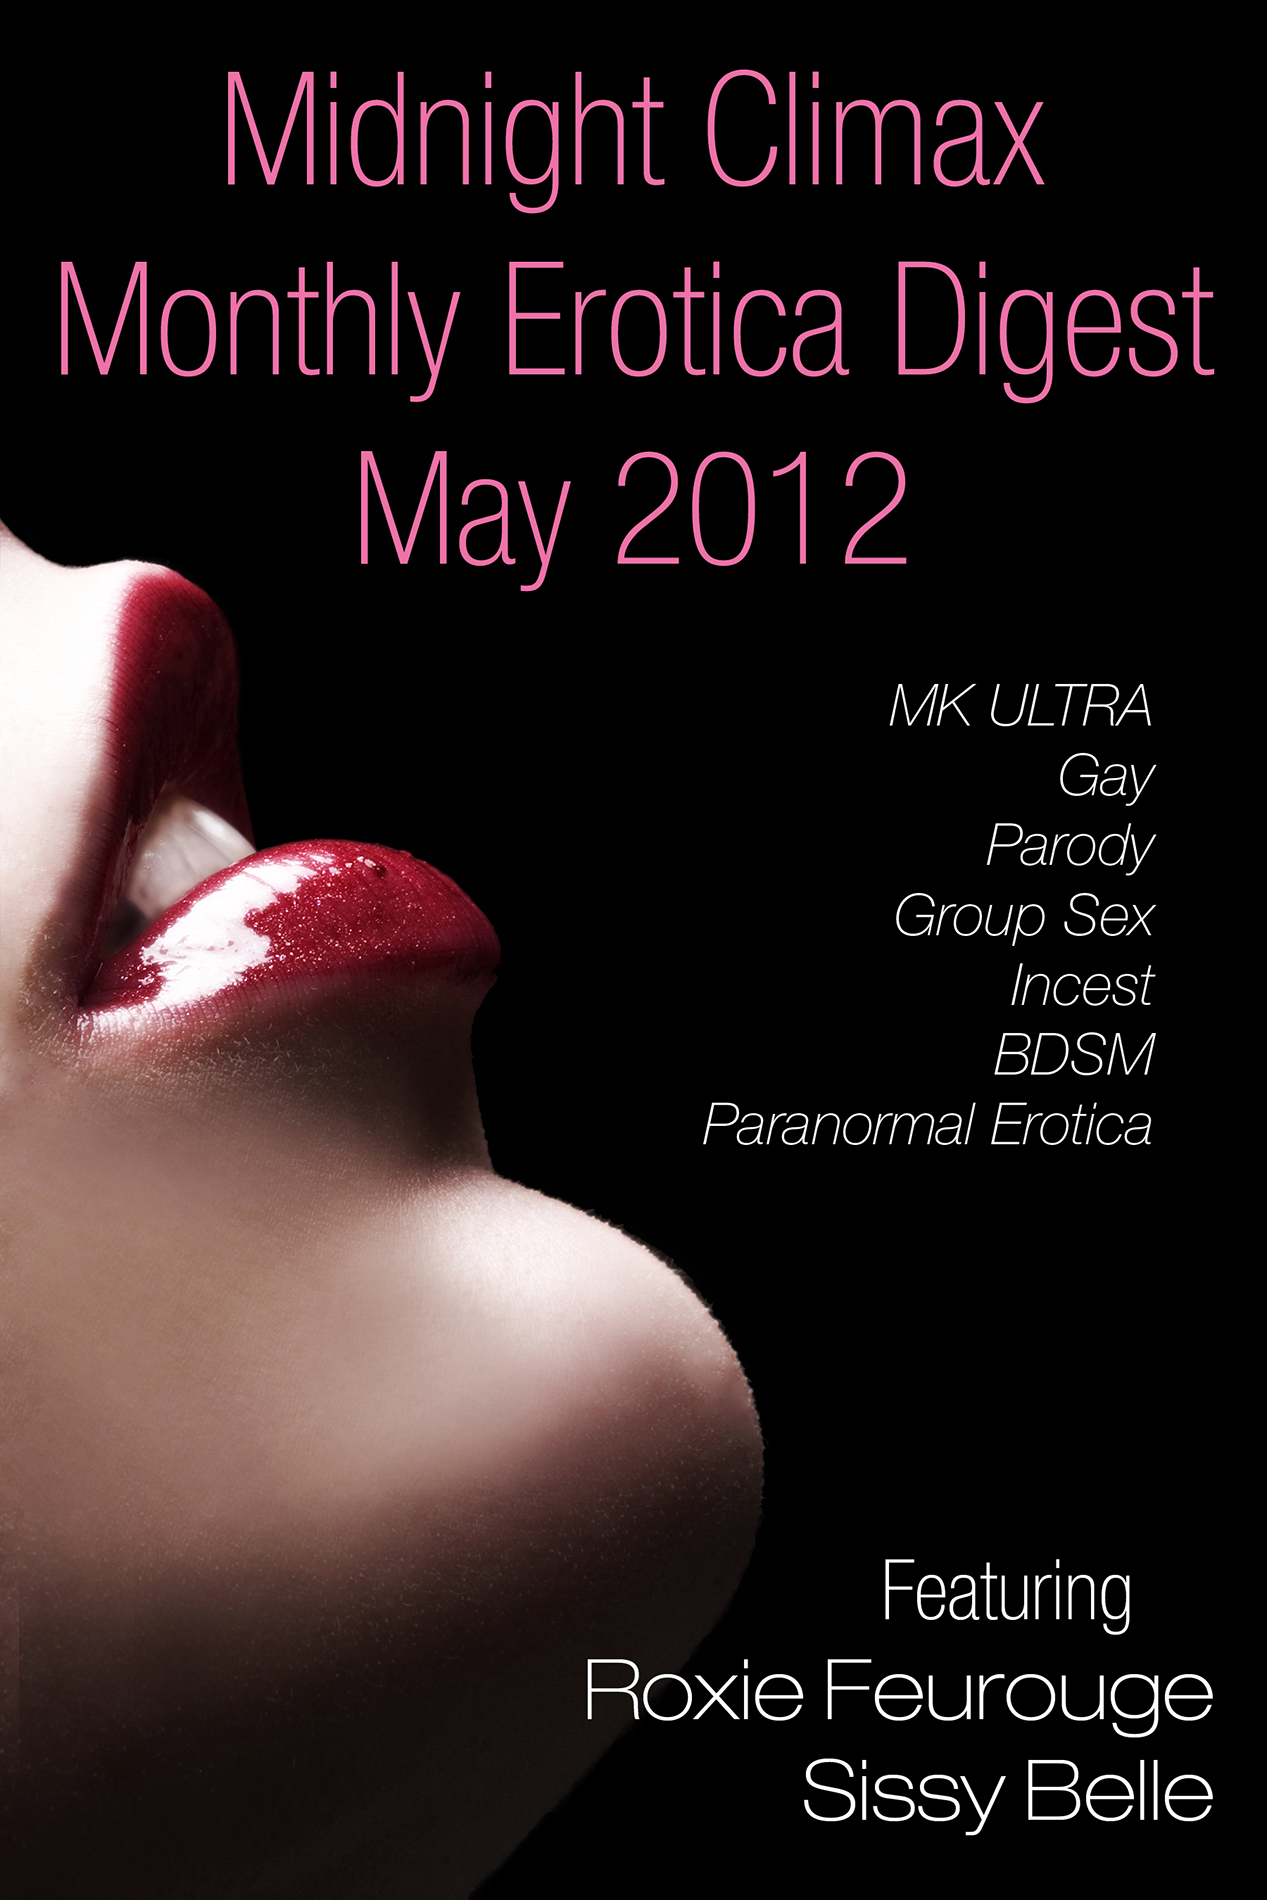 Midnight Climax Monthly Erotica Digest: May 2012 (MK ULTRA, Gay, Parody, Group Sex, Incest, BDSM, Paranormal Erotica)